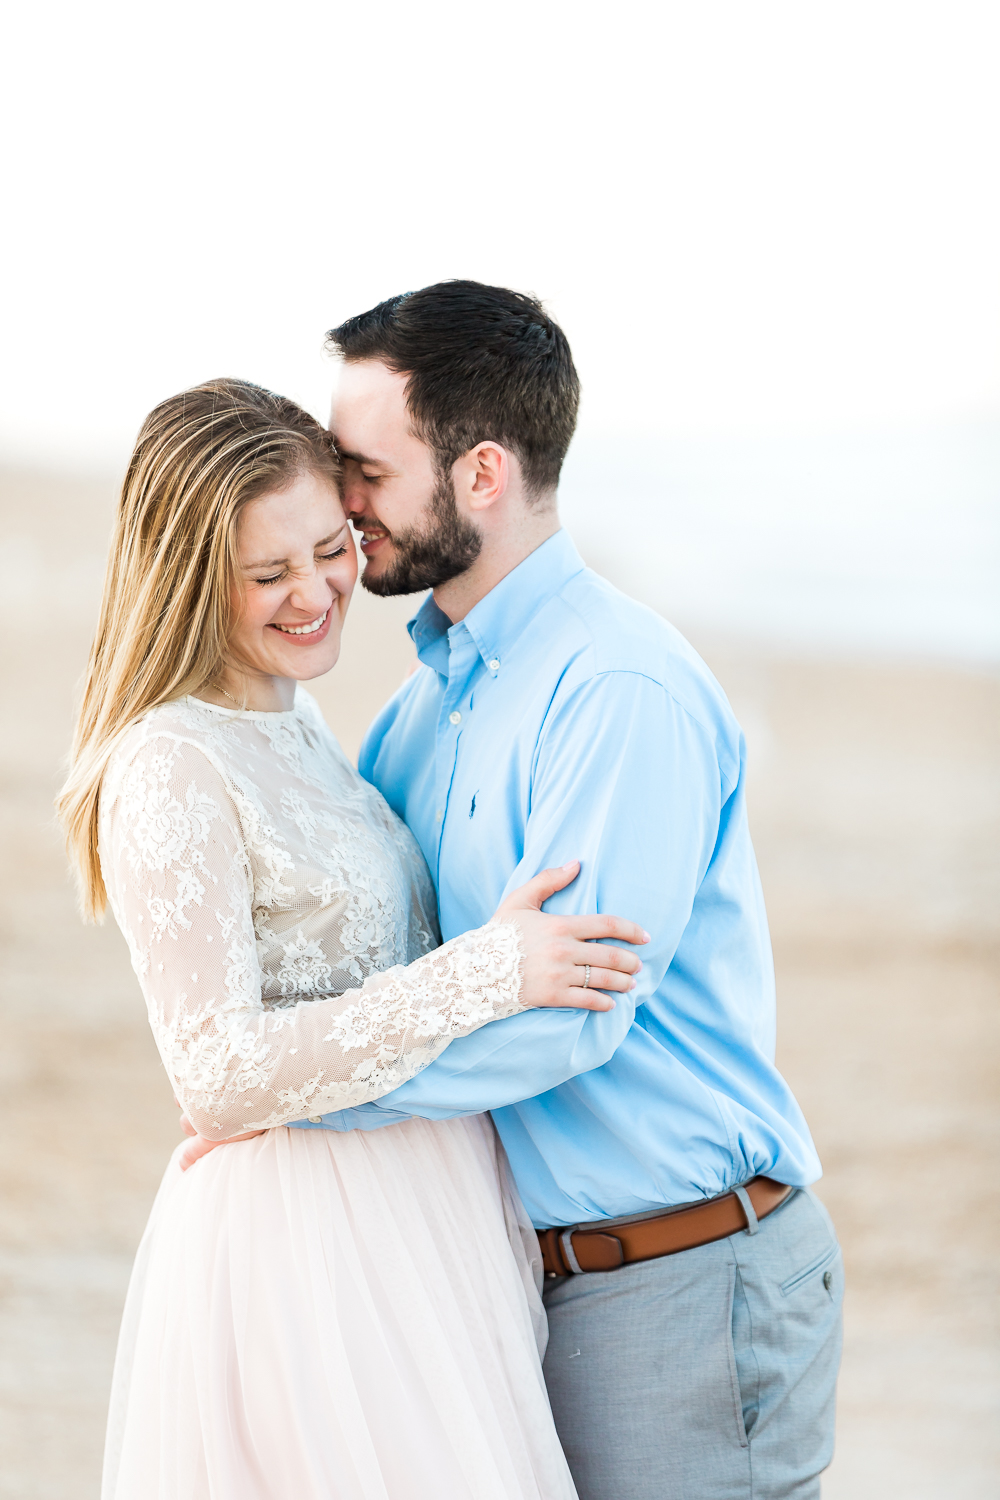 Relaxing engagement picture ideas